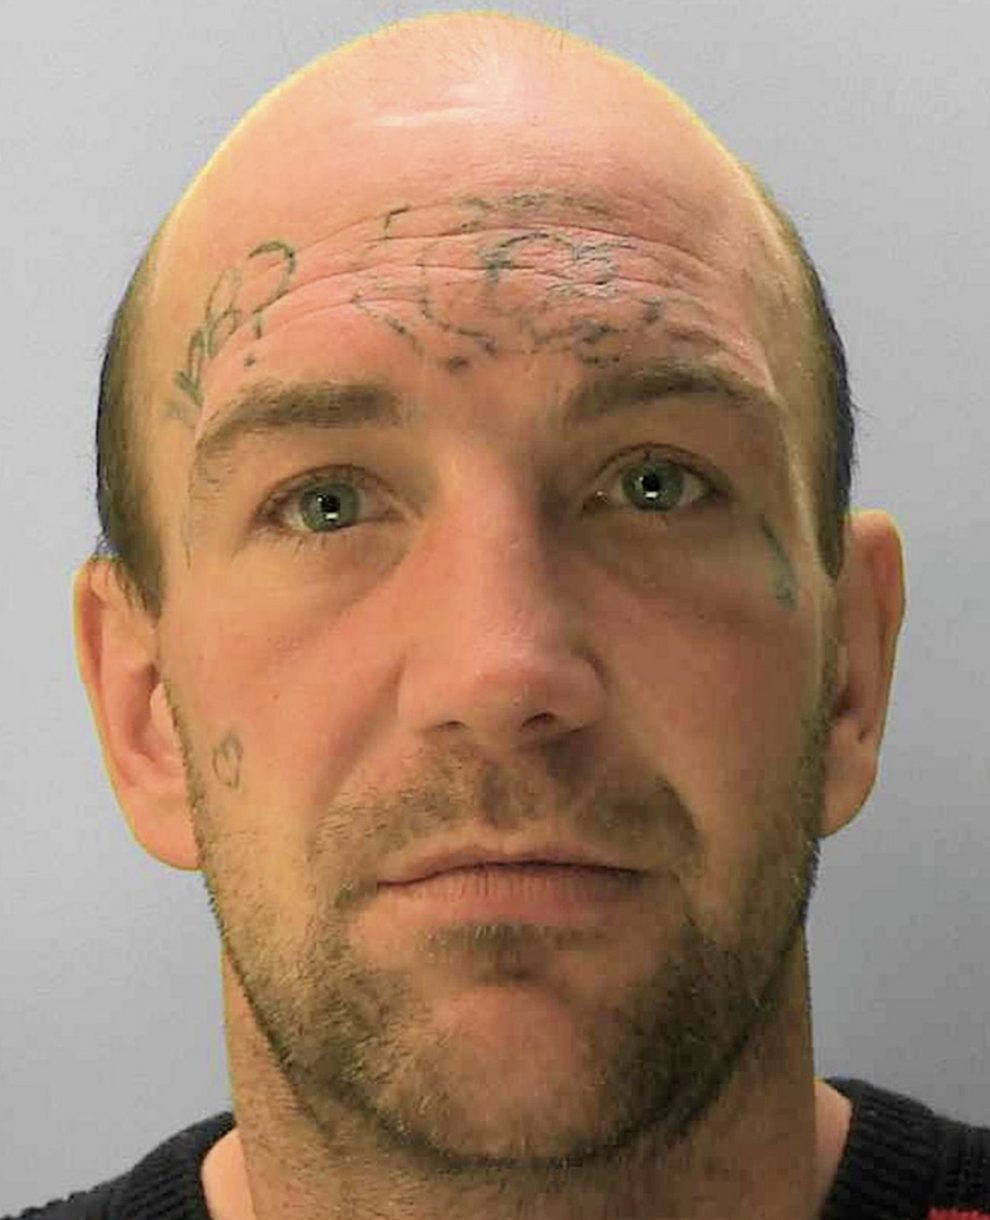 A man who was banned from Eastbourne town centre has been jailed for breaching the terms of his Criminal Behaviour Order